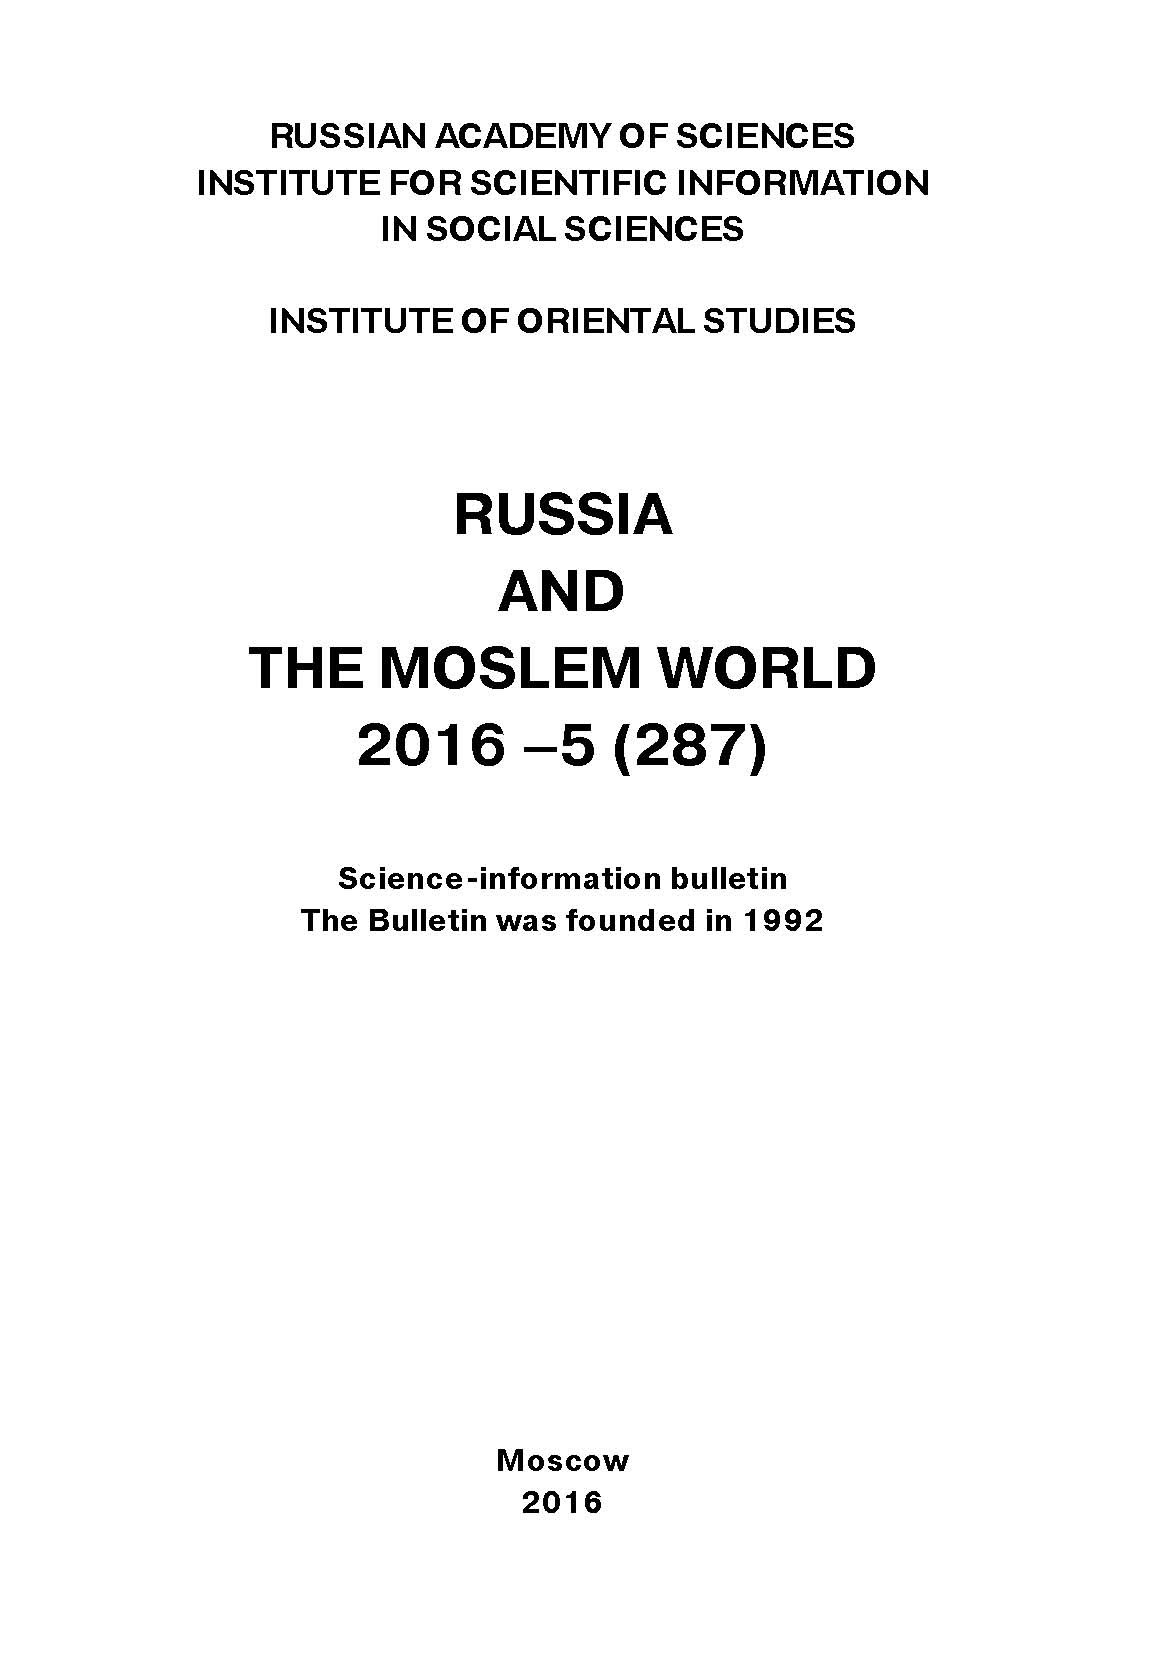 Сборник статей Russia and the Moslem World № 05 / 2016 сборник статей russia and the moslem world 05 2016